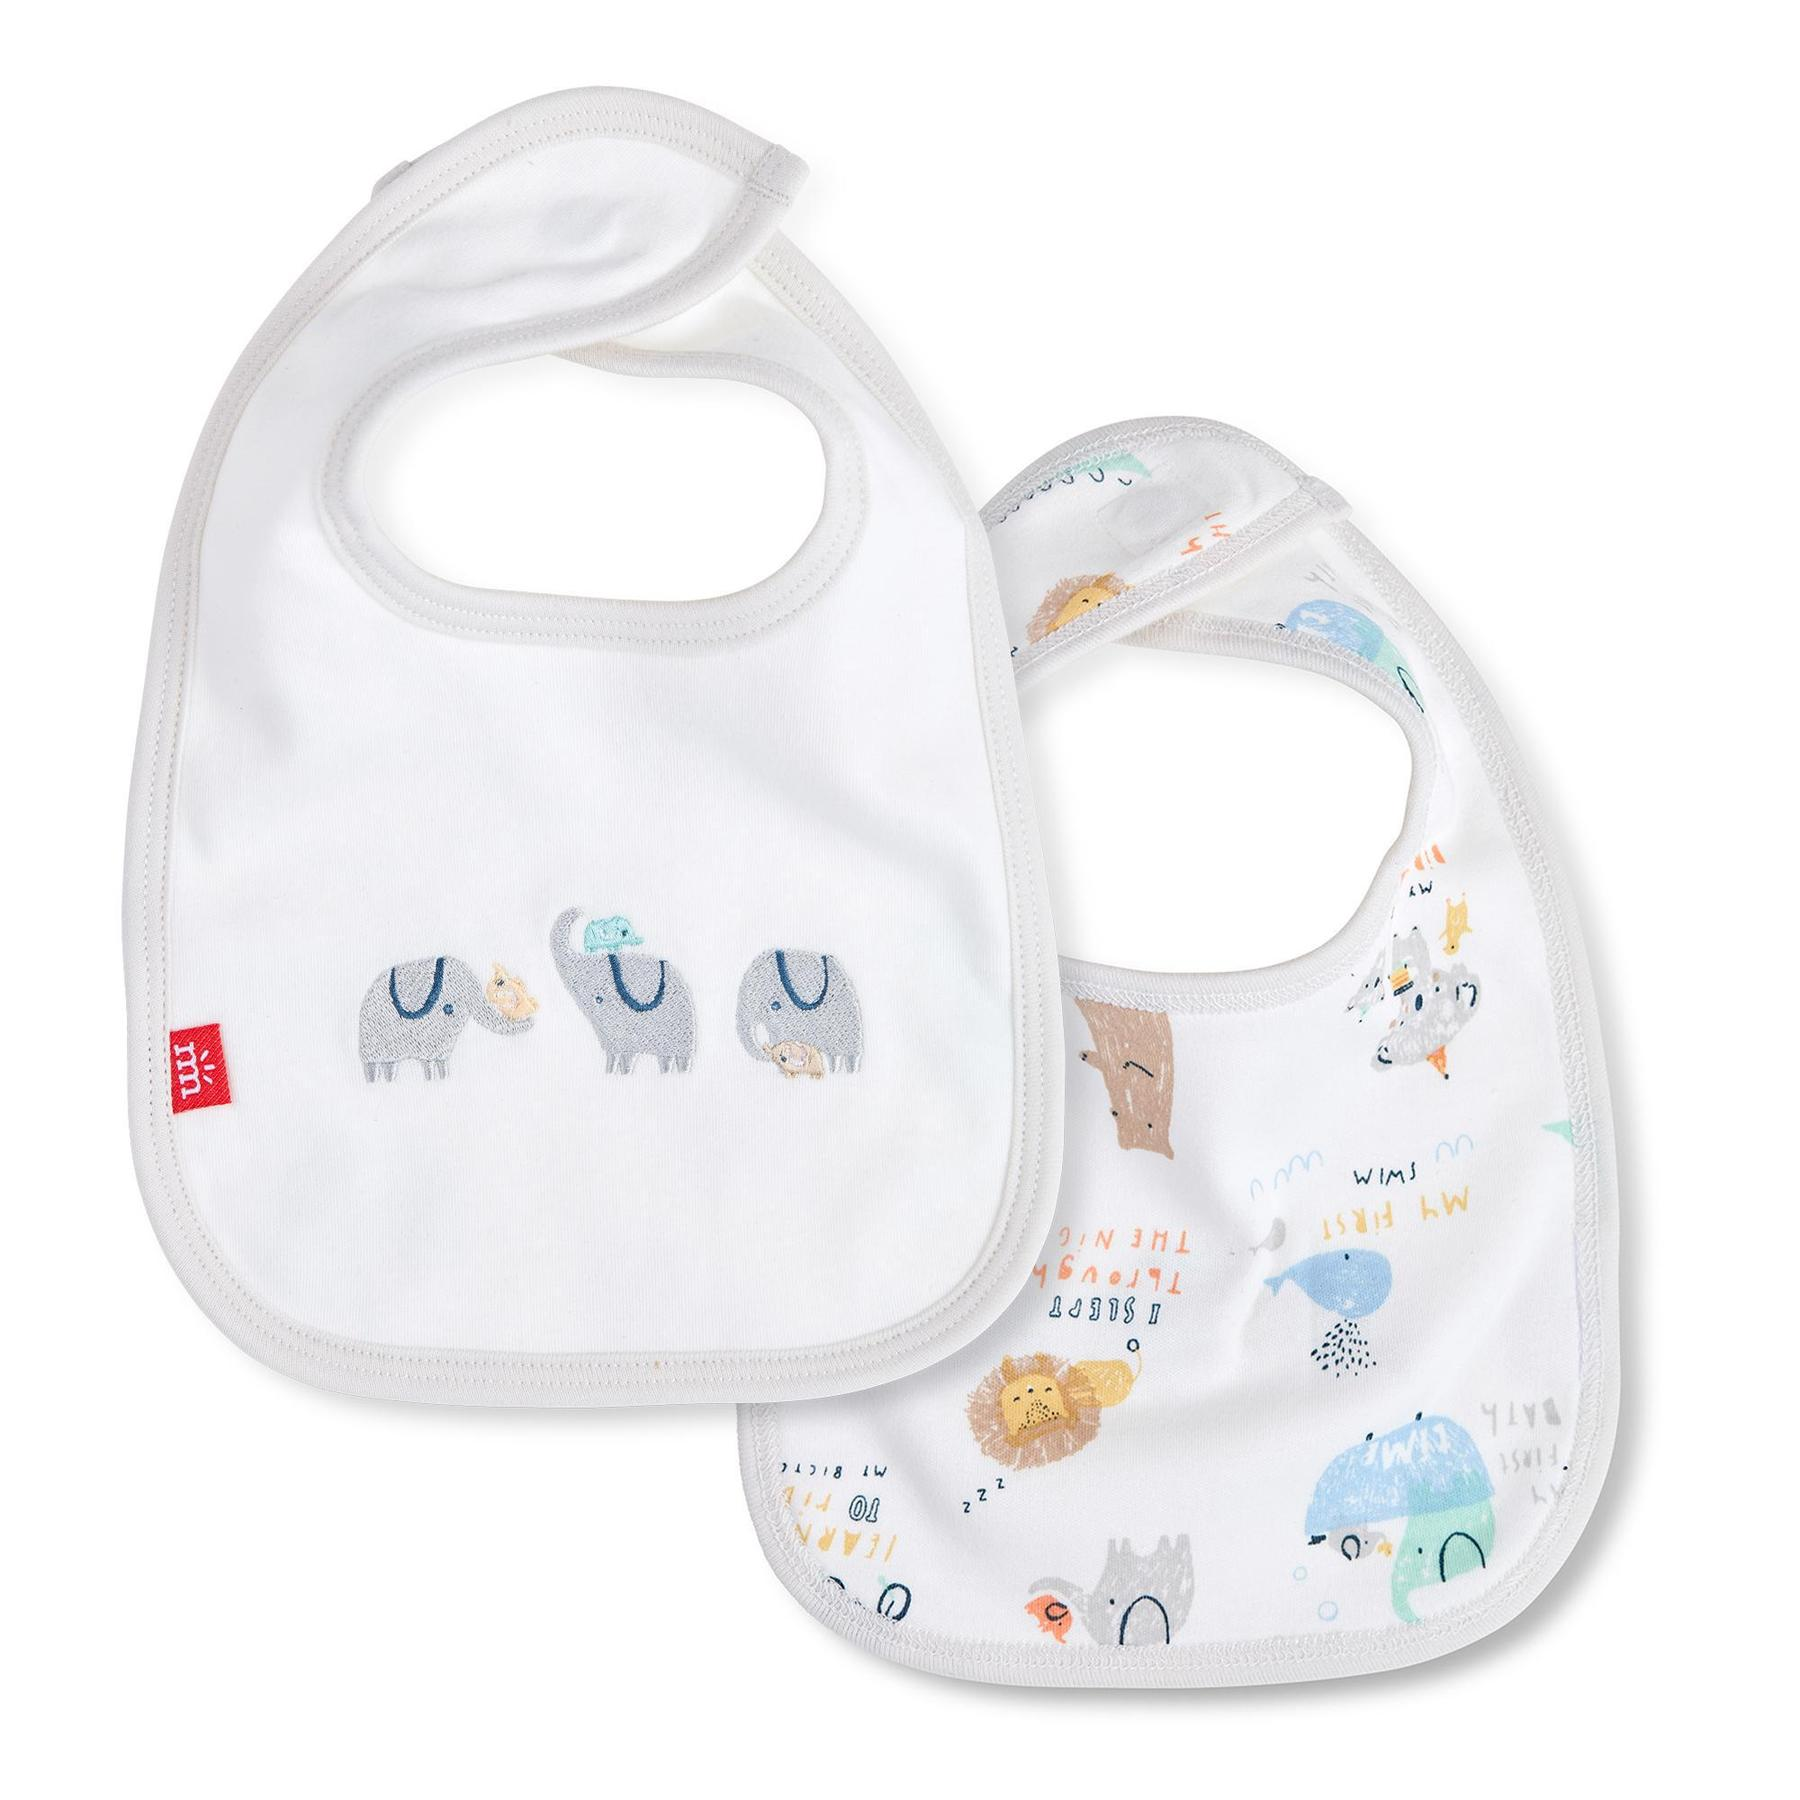 My Year of Firsts Magnetic Reversible Bib